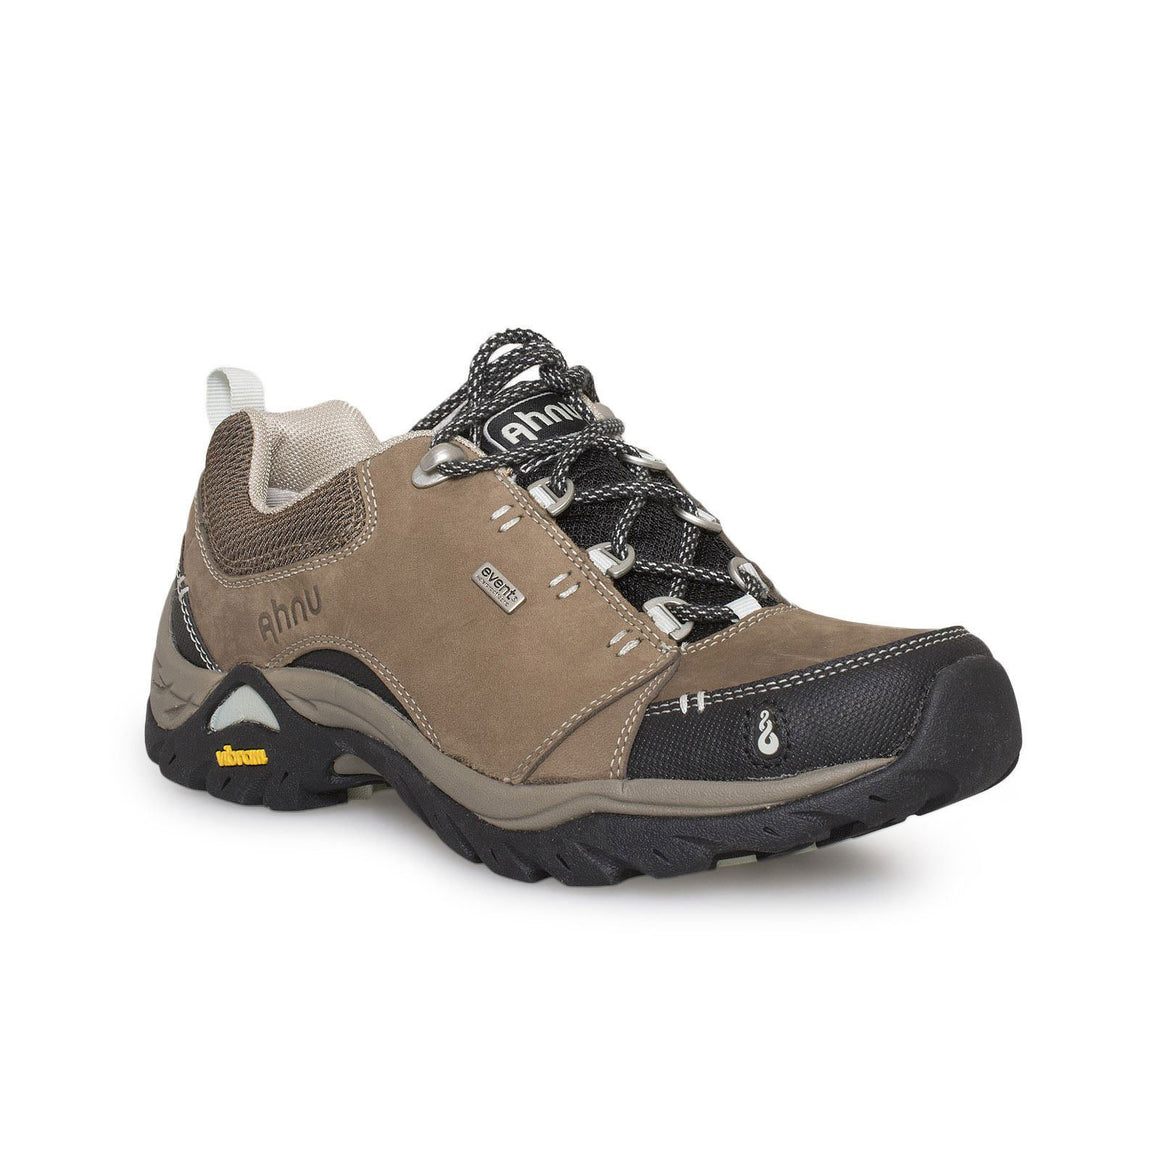 Ahnu Montara II Chocolate Chip Hiking Boots